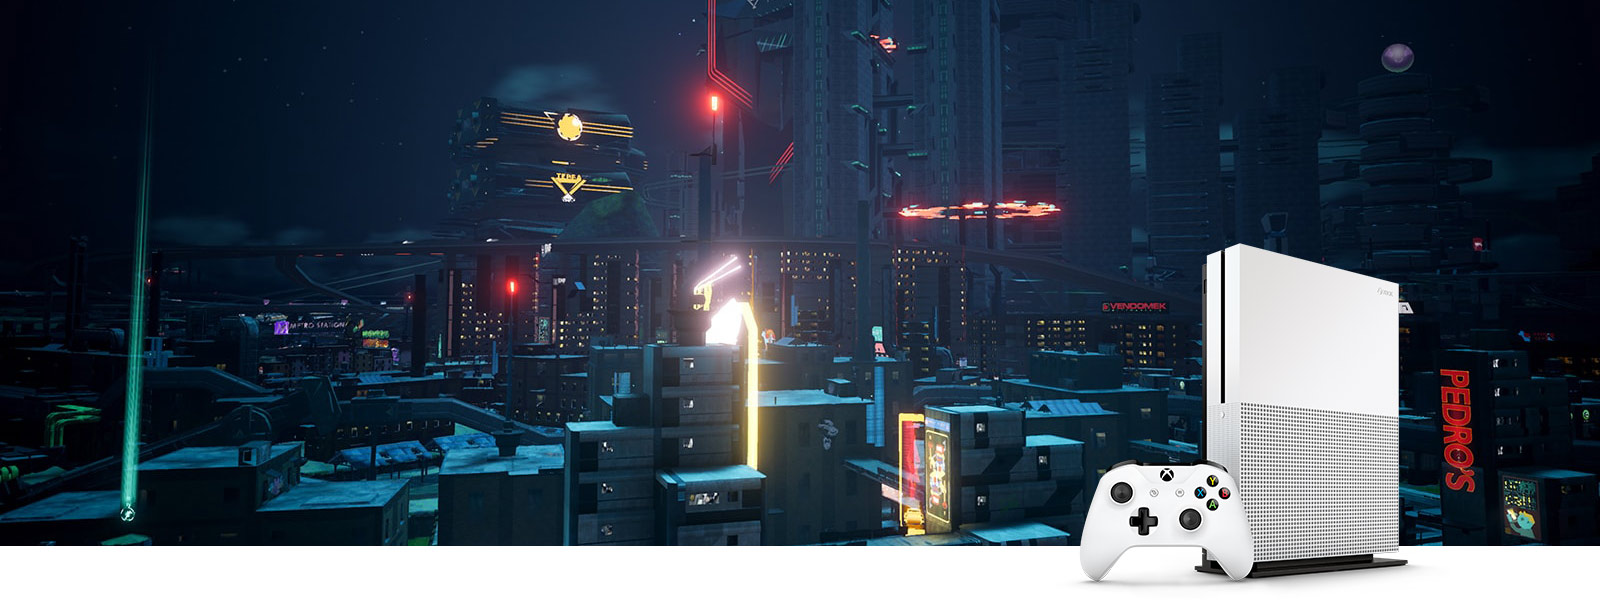 Crackdown 3 - Screenshot zonder HDR